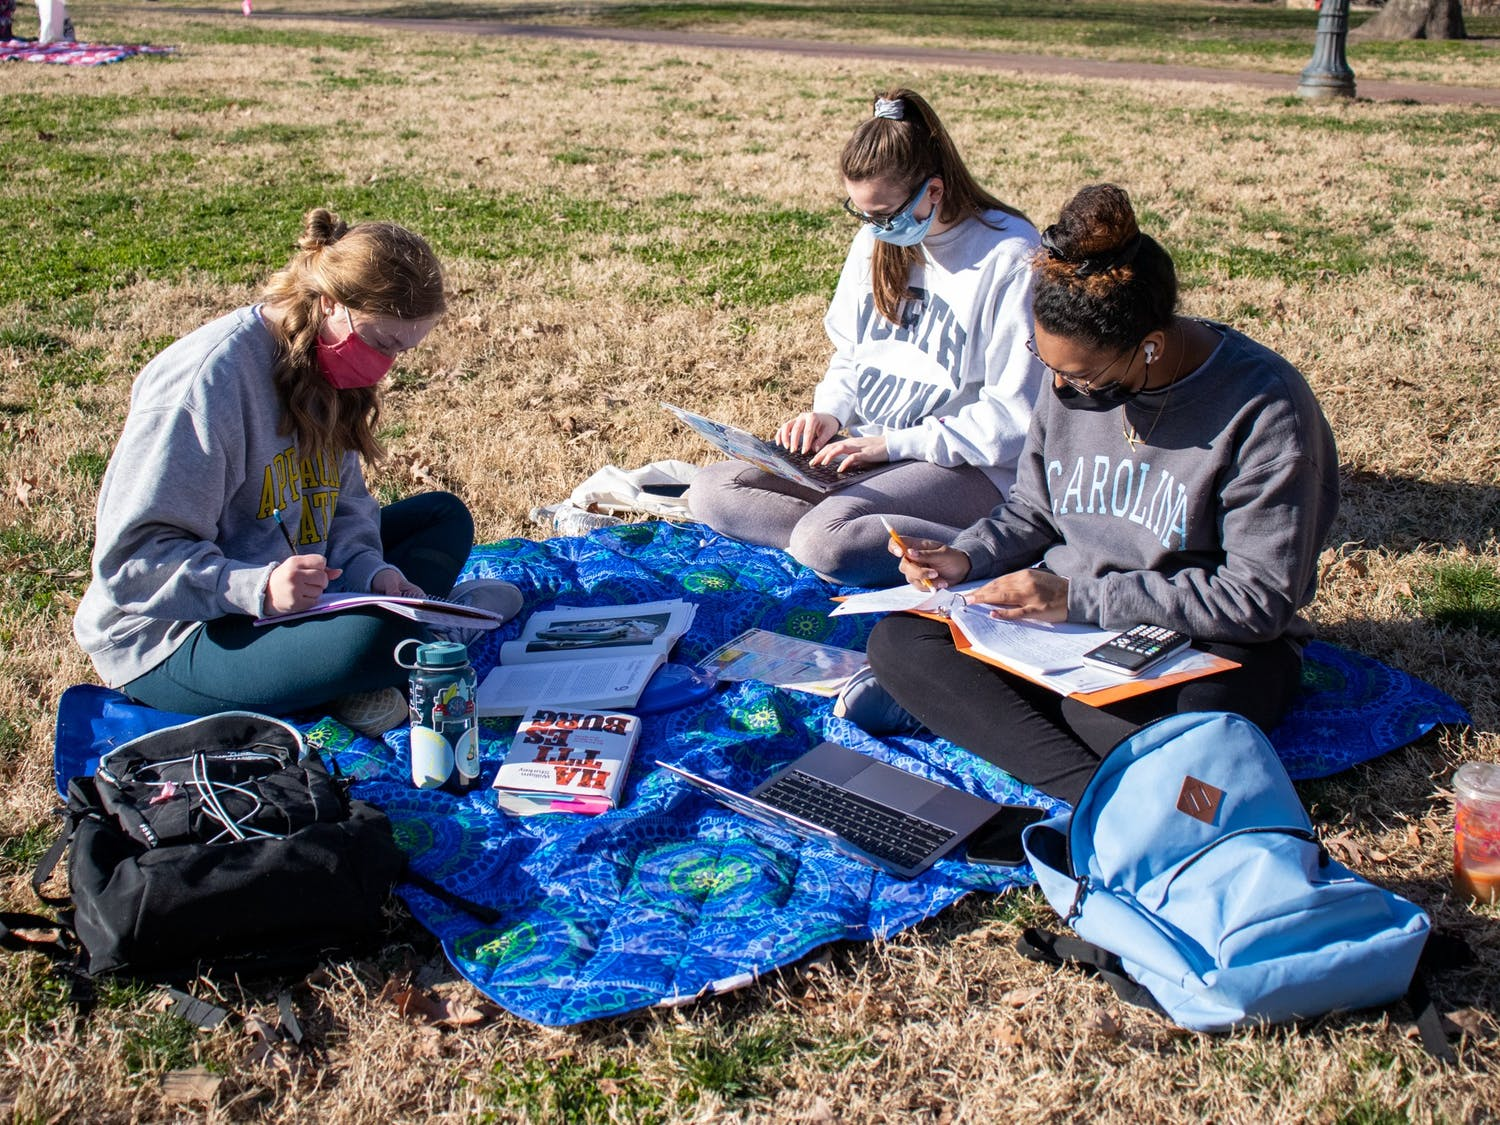 UNC students work on schoolwork at Polk Place in Chapel Hill on March 7, 2021.